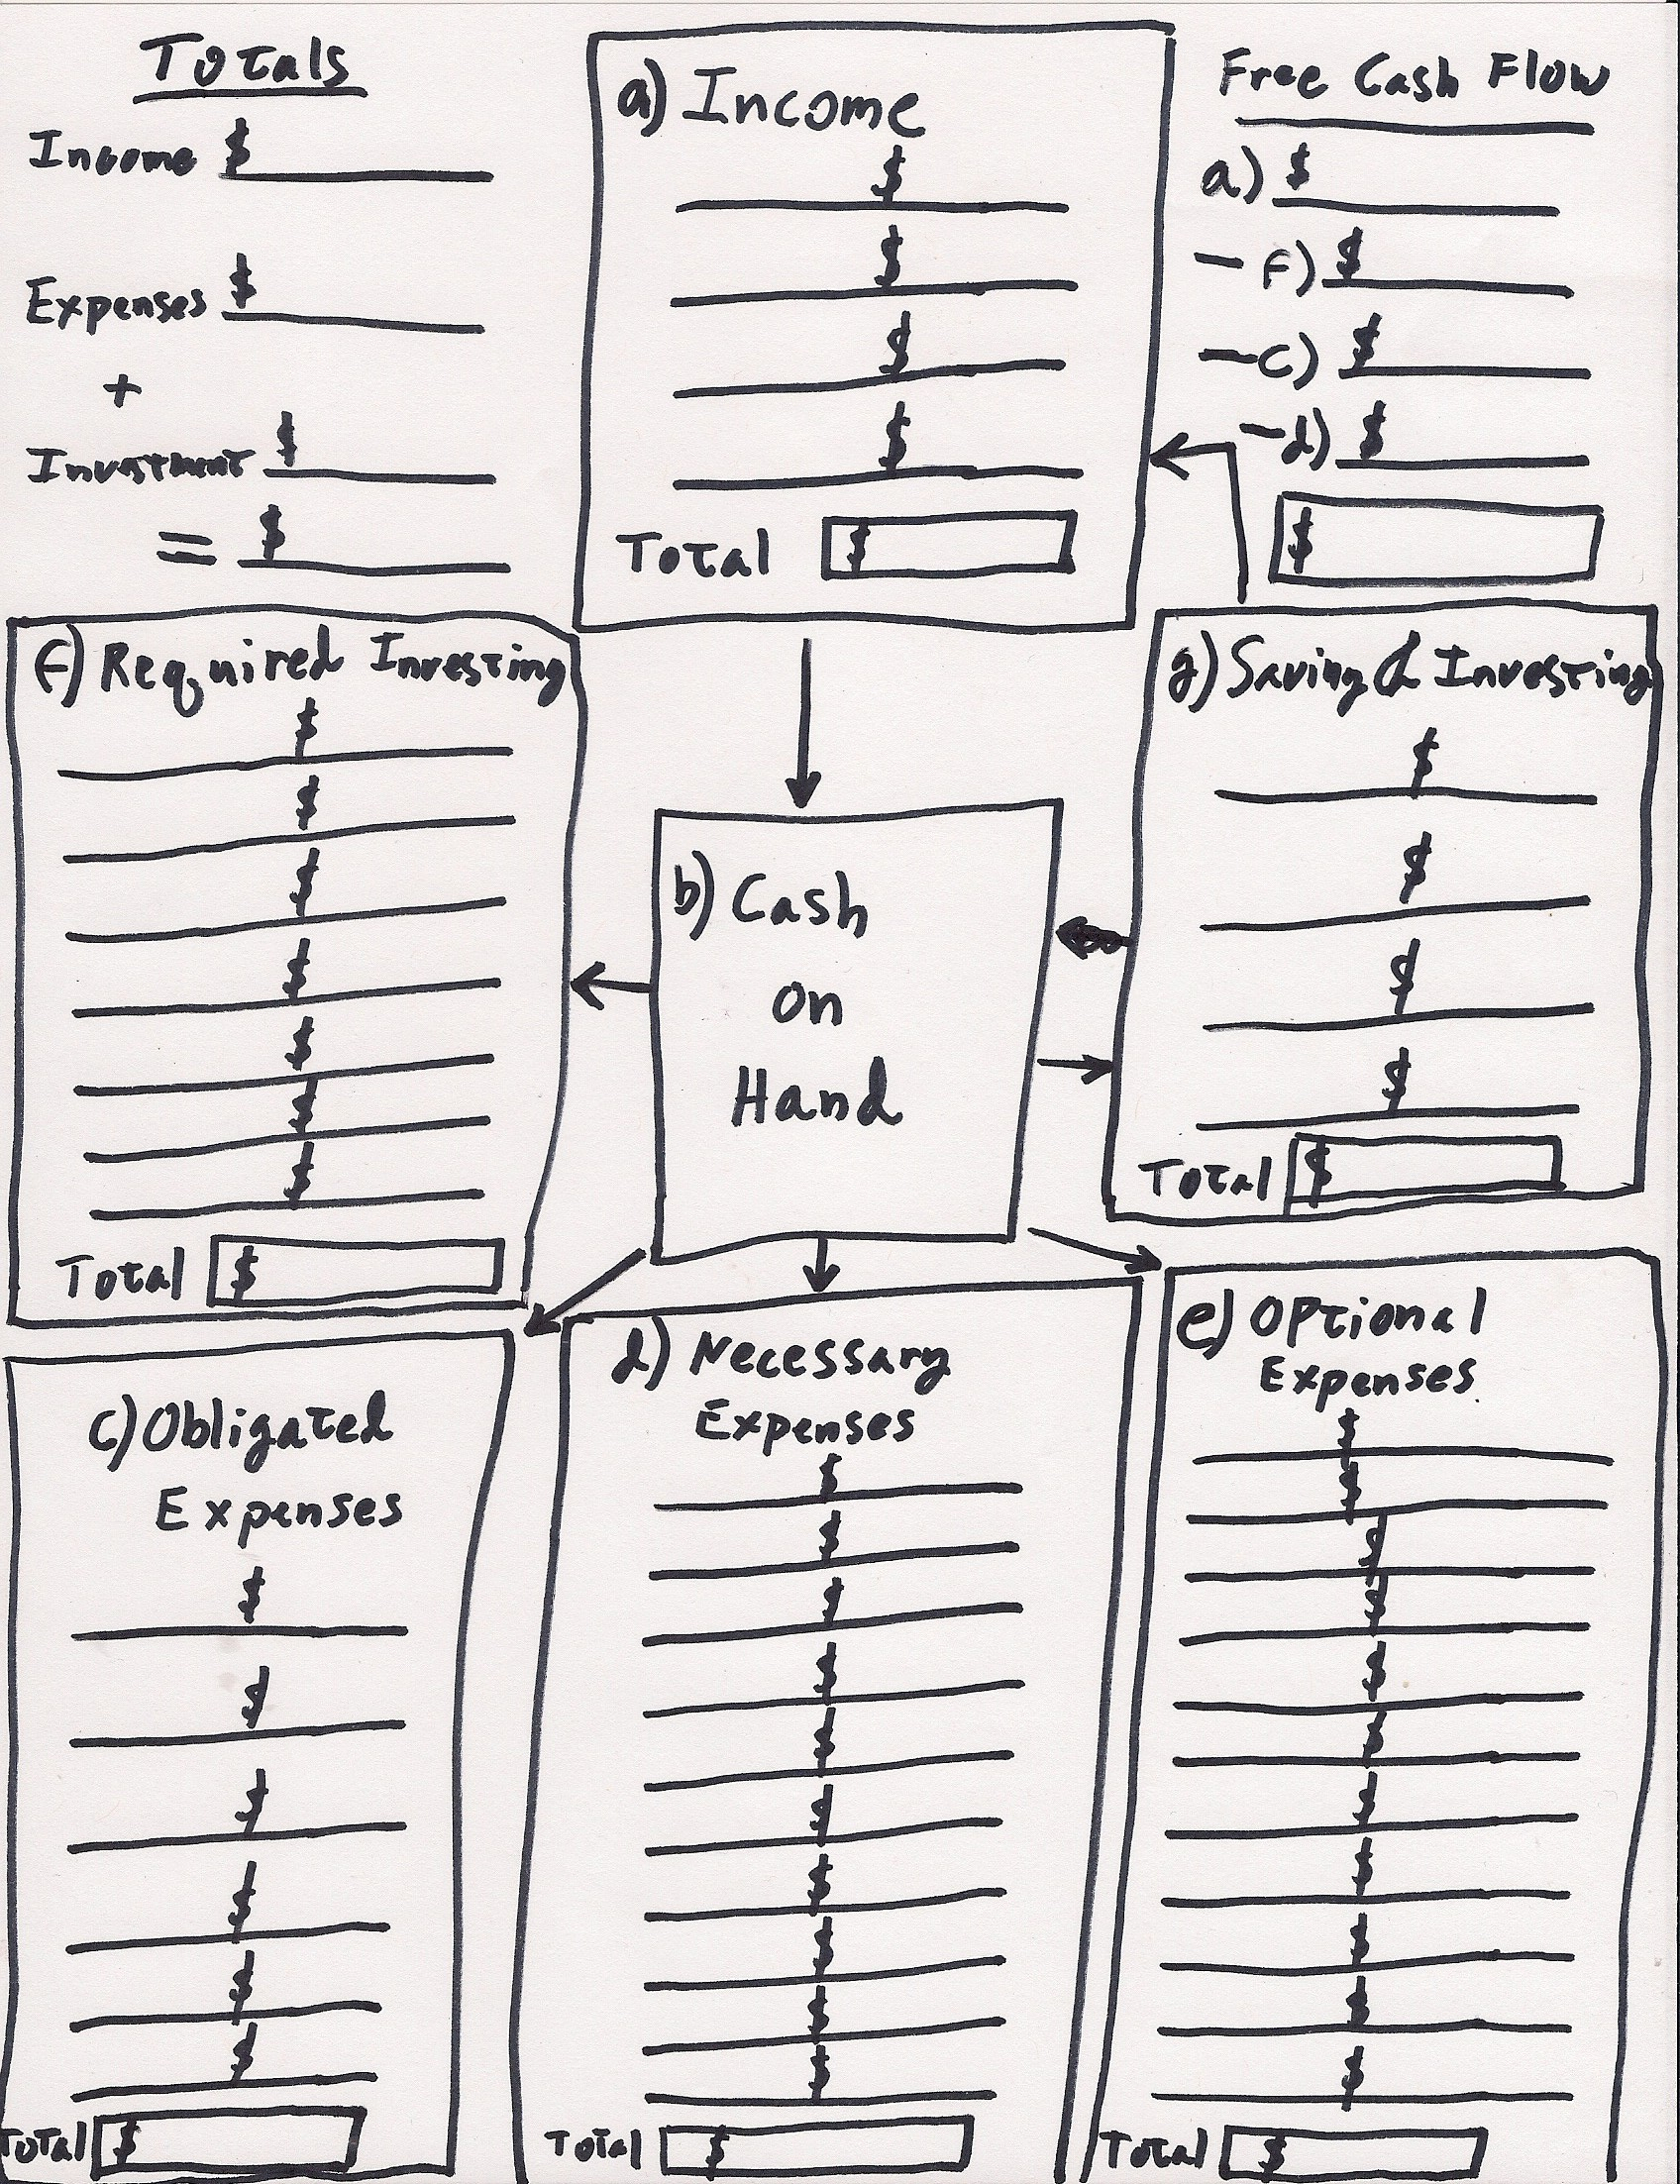 Household Cash Flow Spreadsheet Within Household Cash Flow  Architecture Modern Idea •